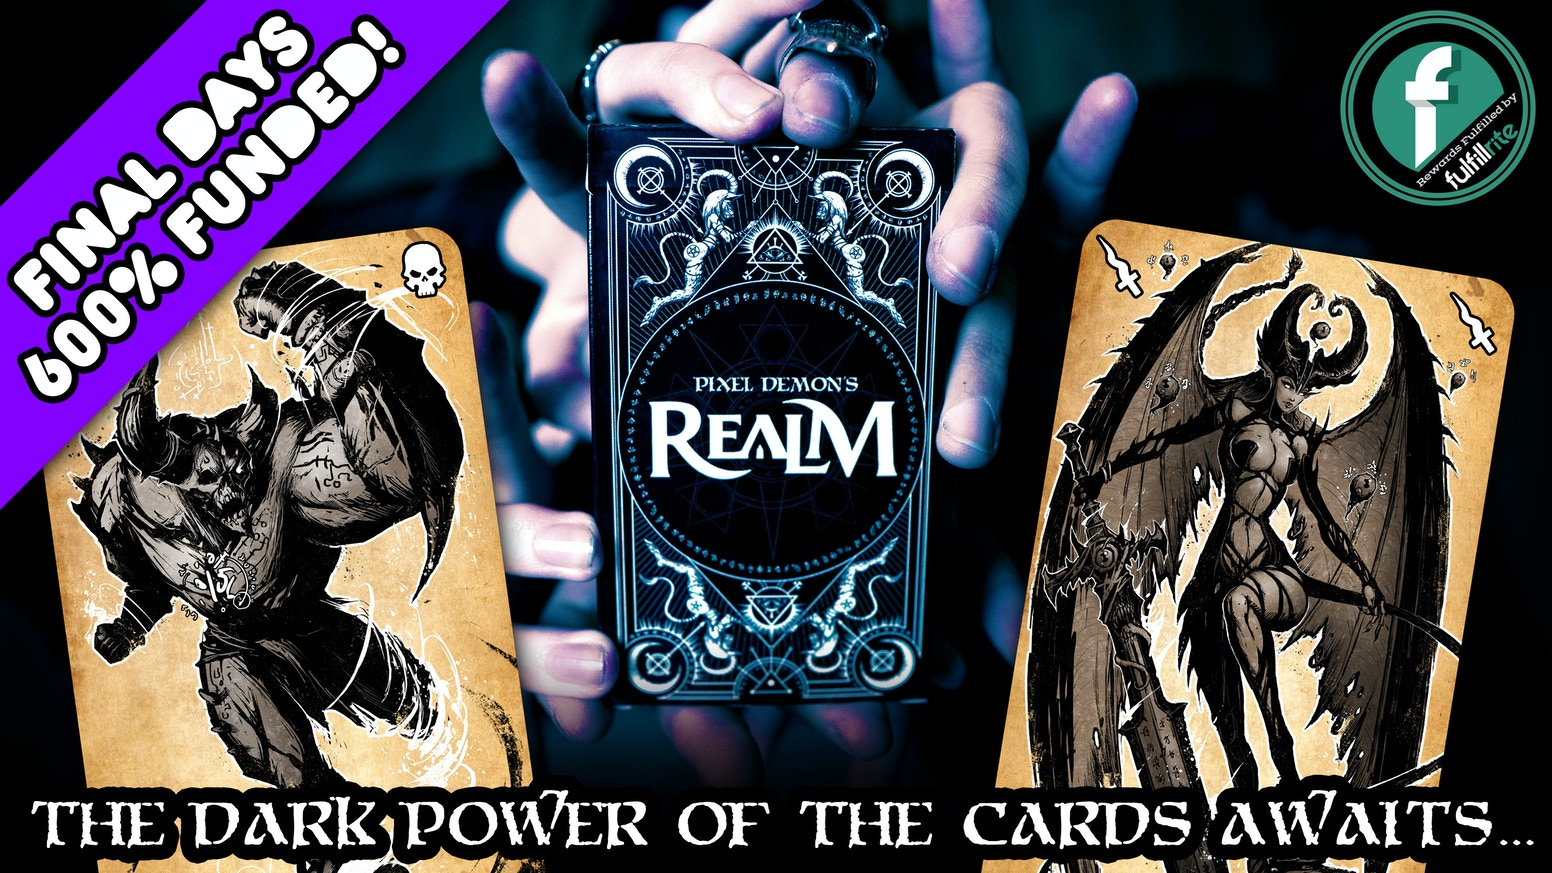 A diabolical strategy card game set in a brand-new fantasy-horror universe.